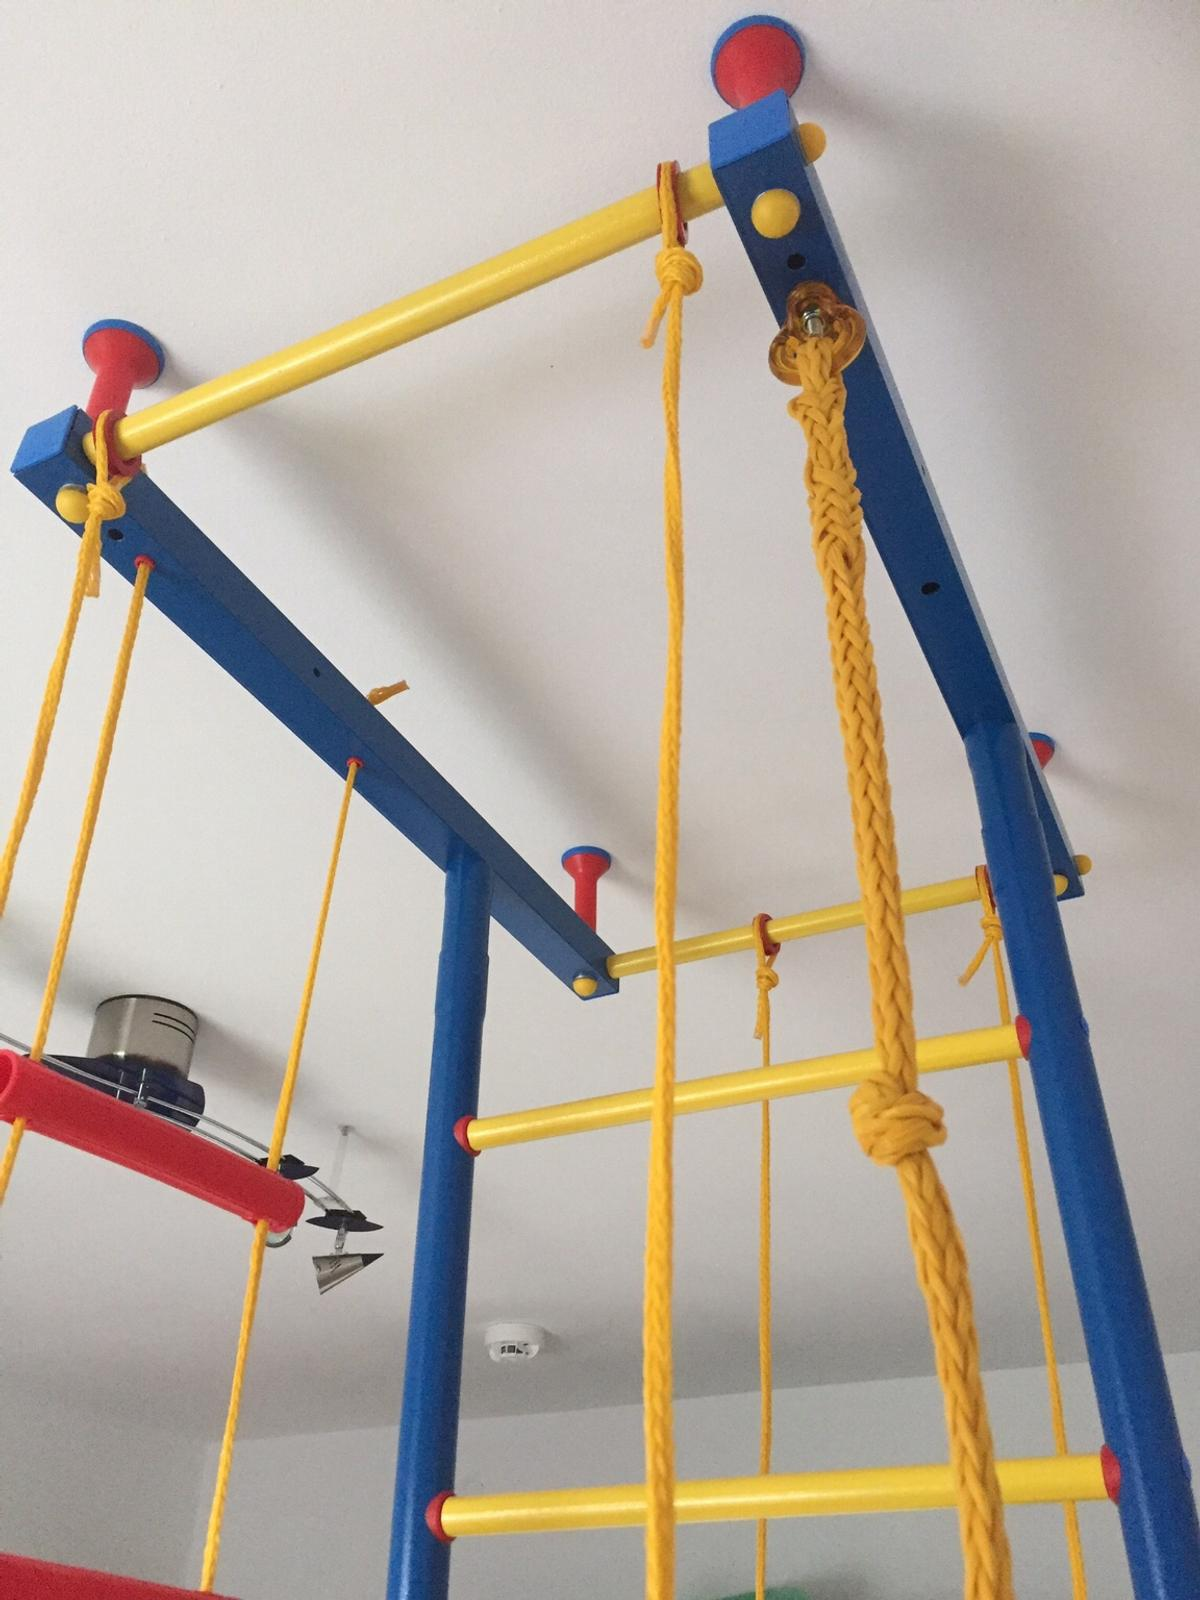 ⭐ Indoor Klettergerüst fürs Kinderzimmer ⭐ in 85435 Erding for ...